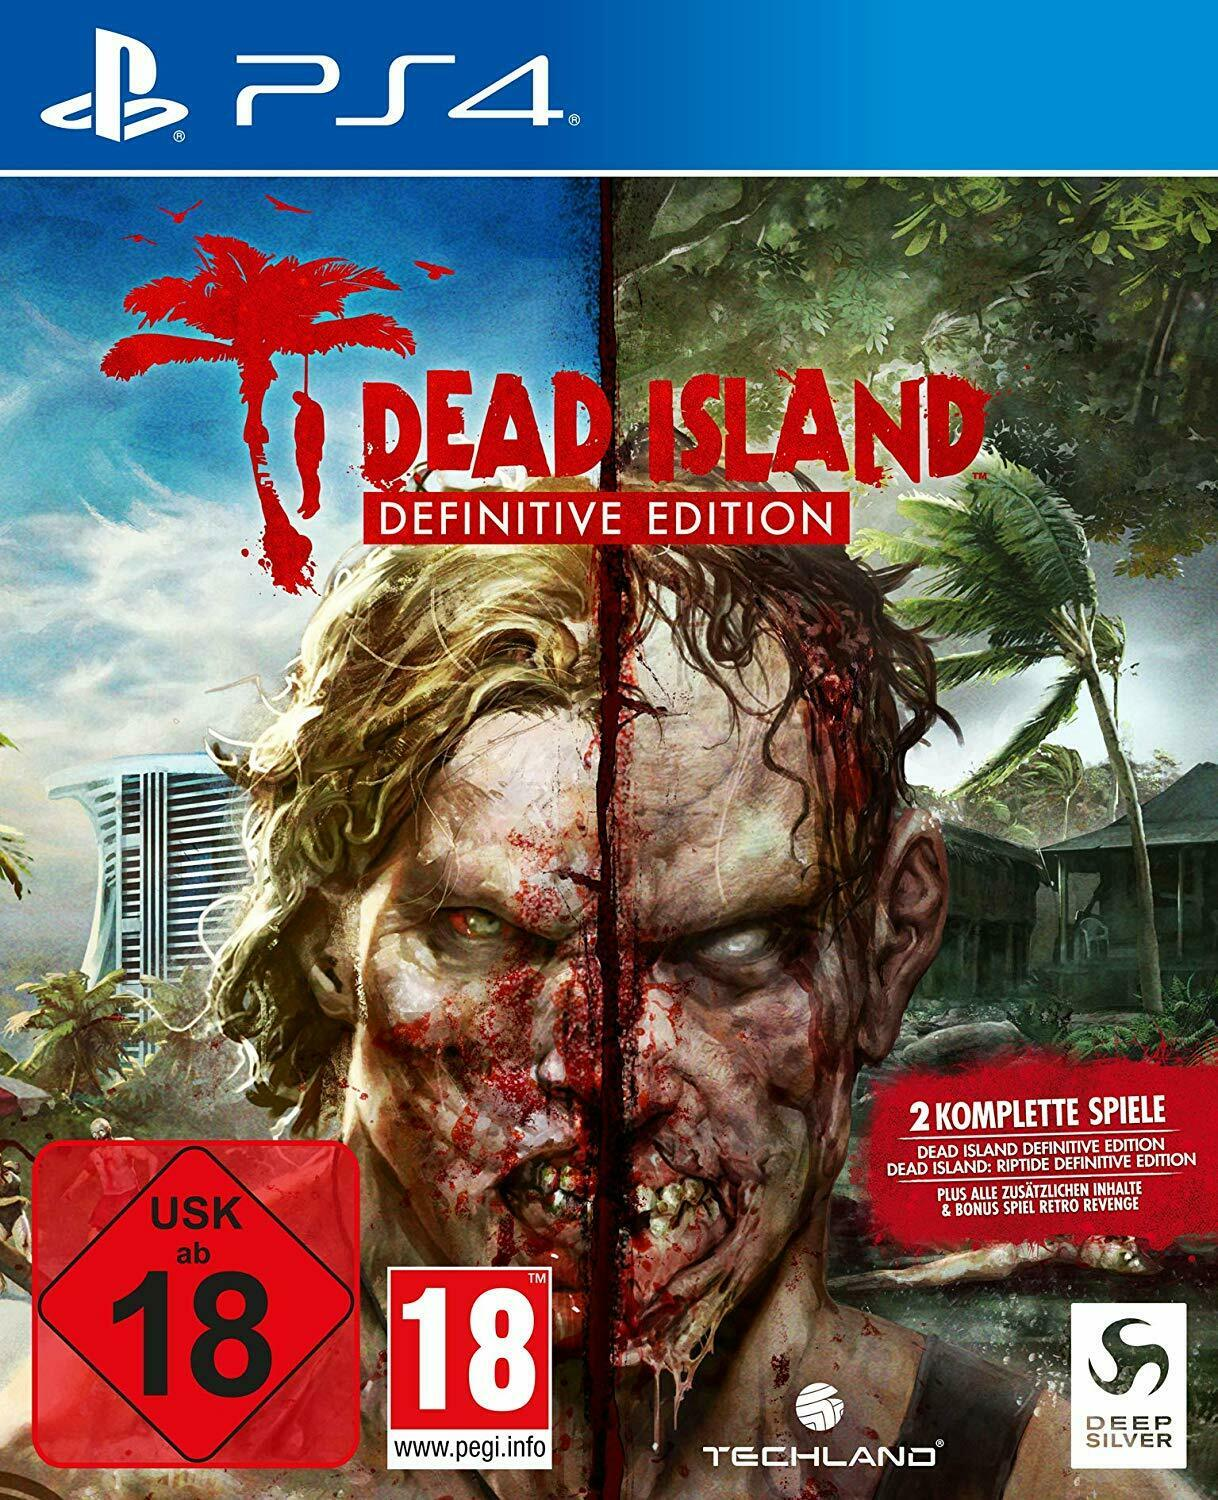 Dead Island Riptide Definitive Edition [PS4] 5.05 / 6.72 [EUR] (2016) [Русский/Английский] (v1.03)